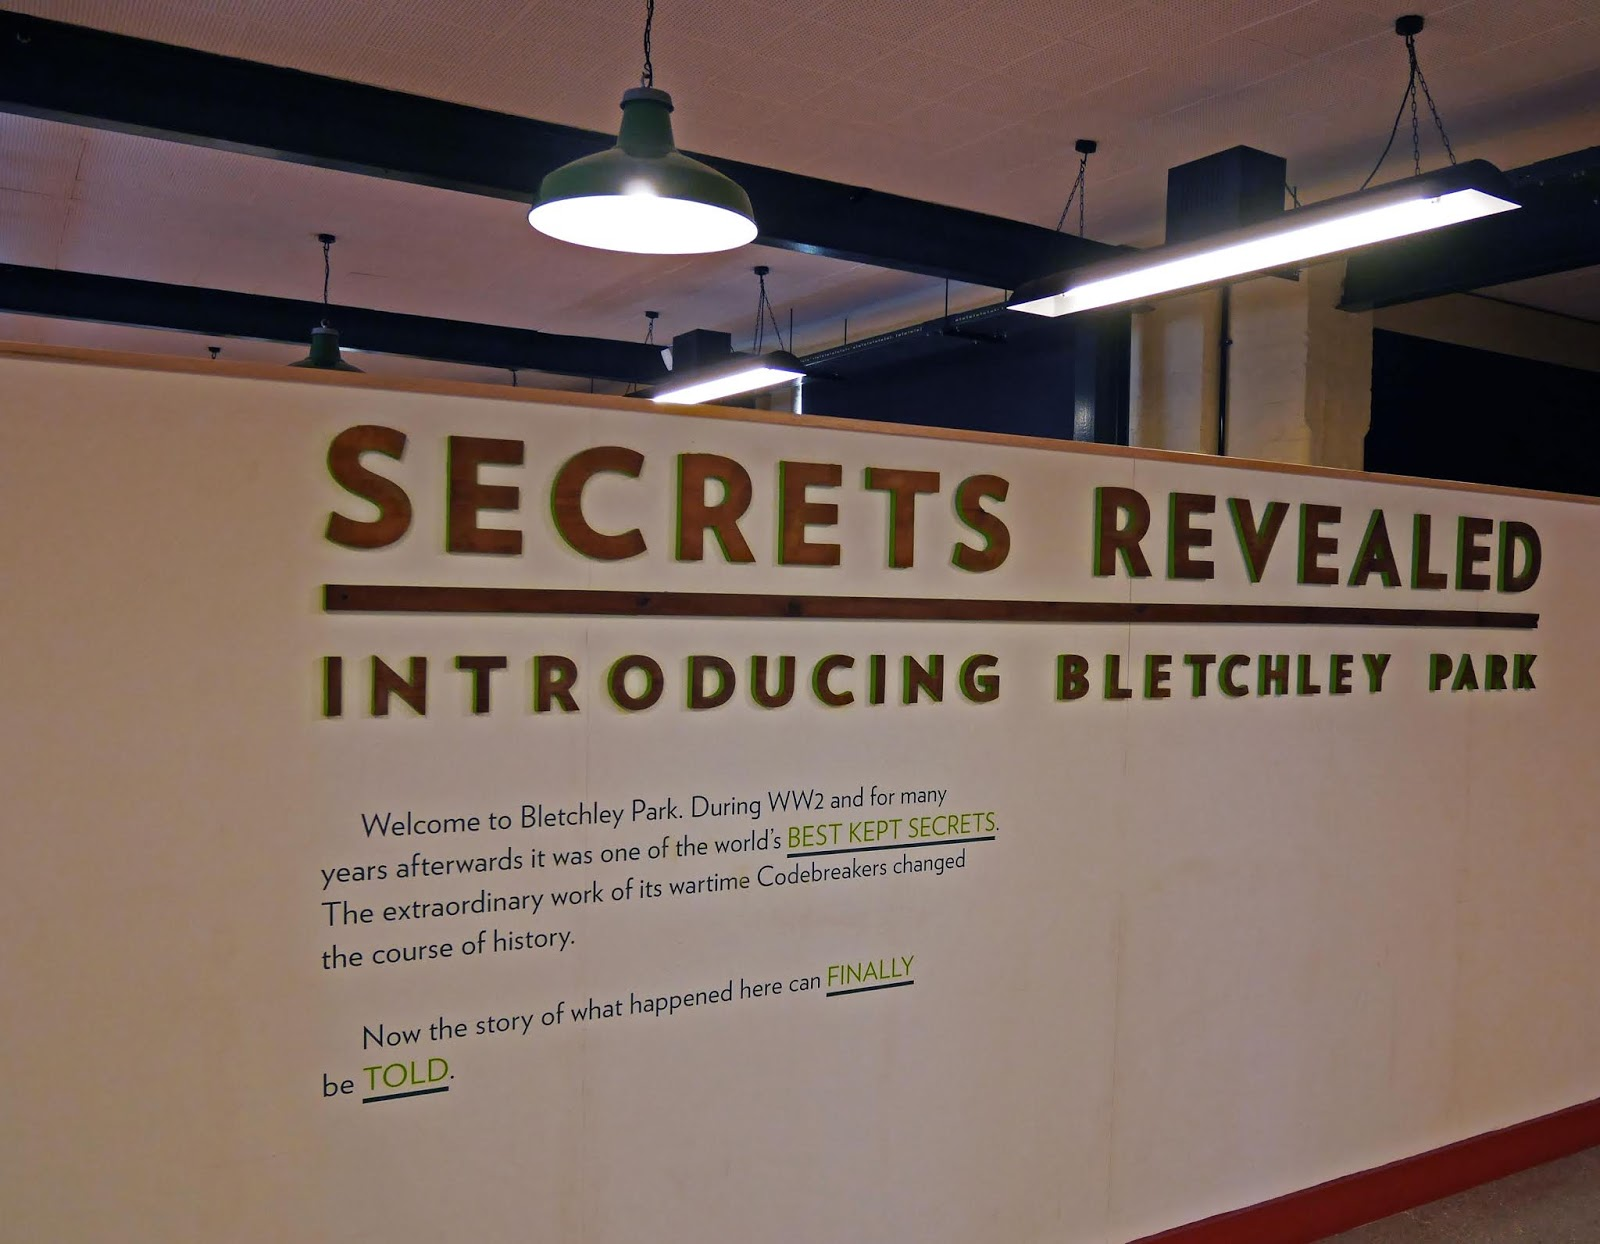 Secrets Revealed: introductory exhibition at Bletchley Park